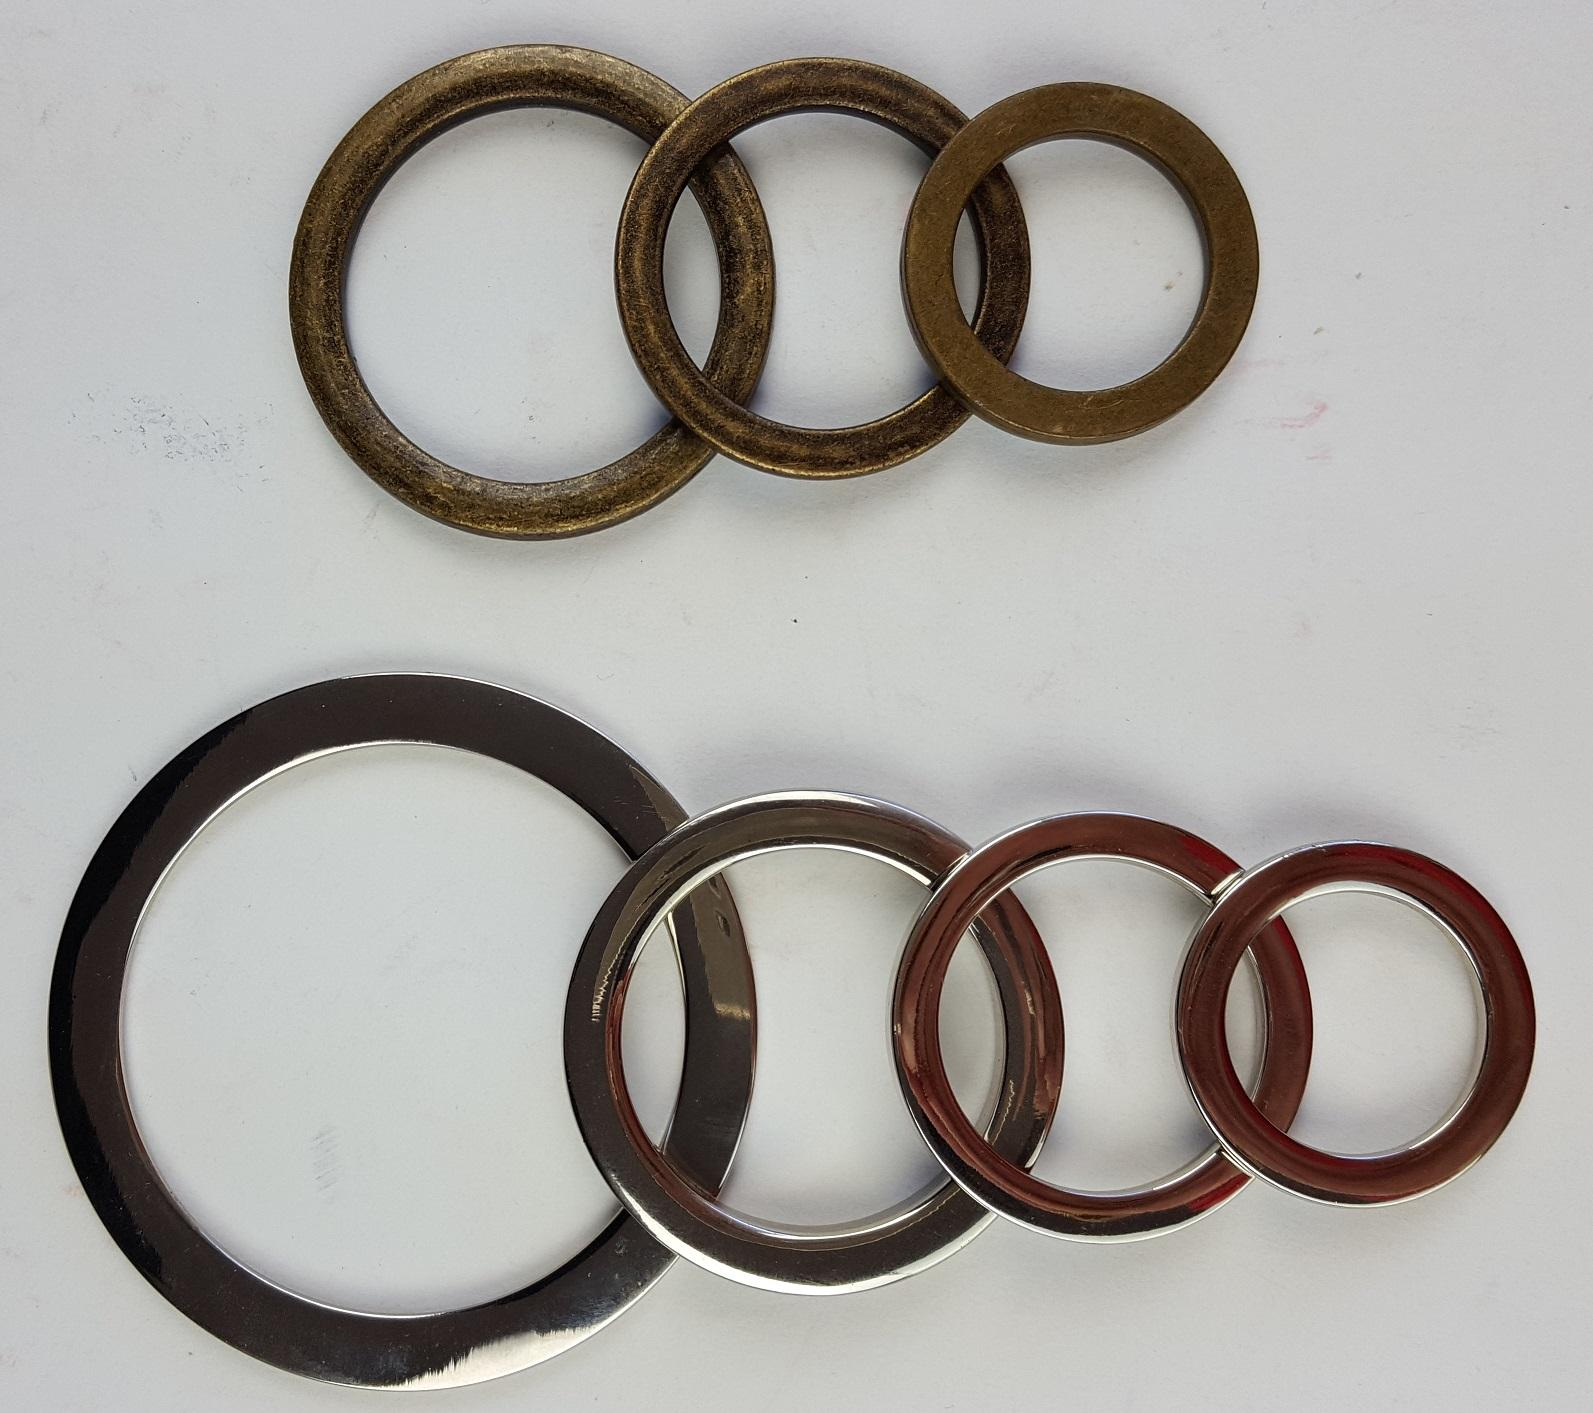 Flat rings 25mm to 50mm AB/NP